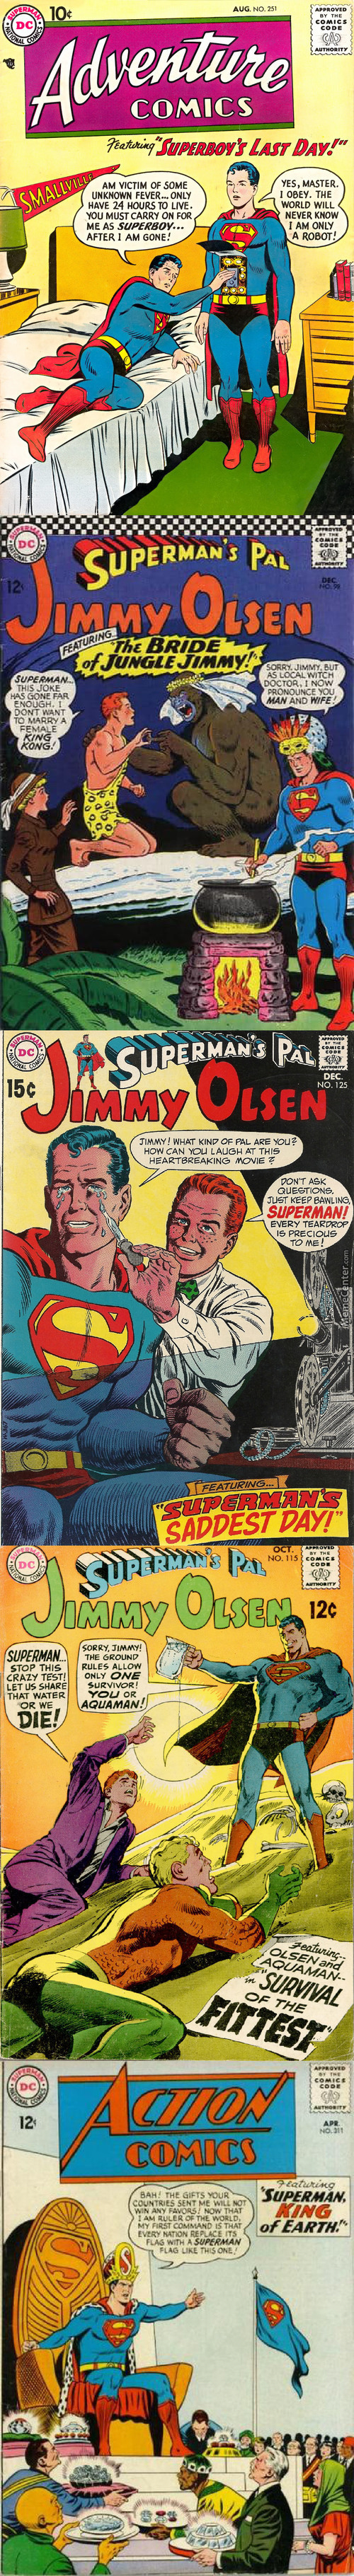 5 Wtf Comic Book Covers Ft. Superman (What The Hell Were They Smoking Back Then)